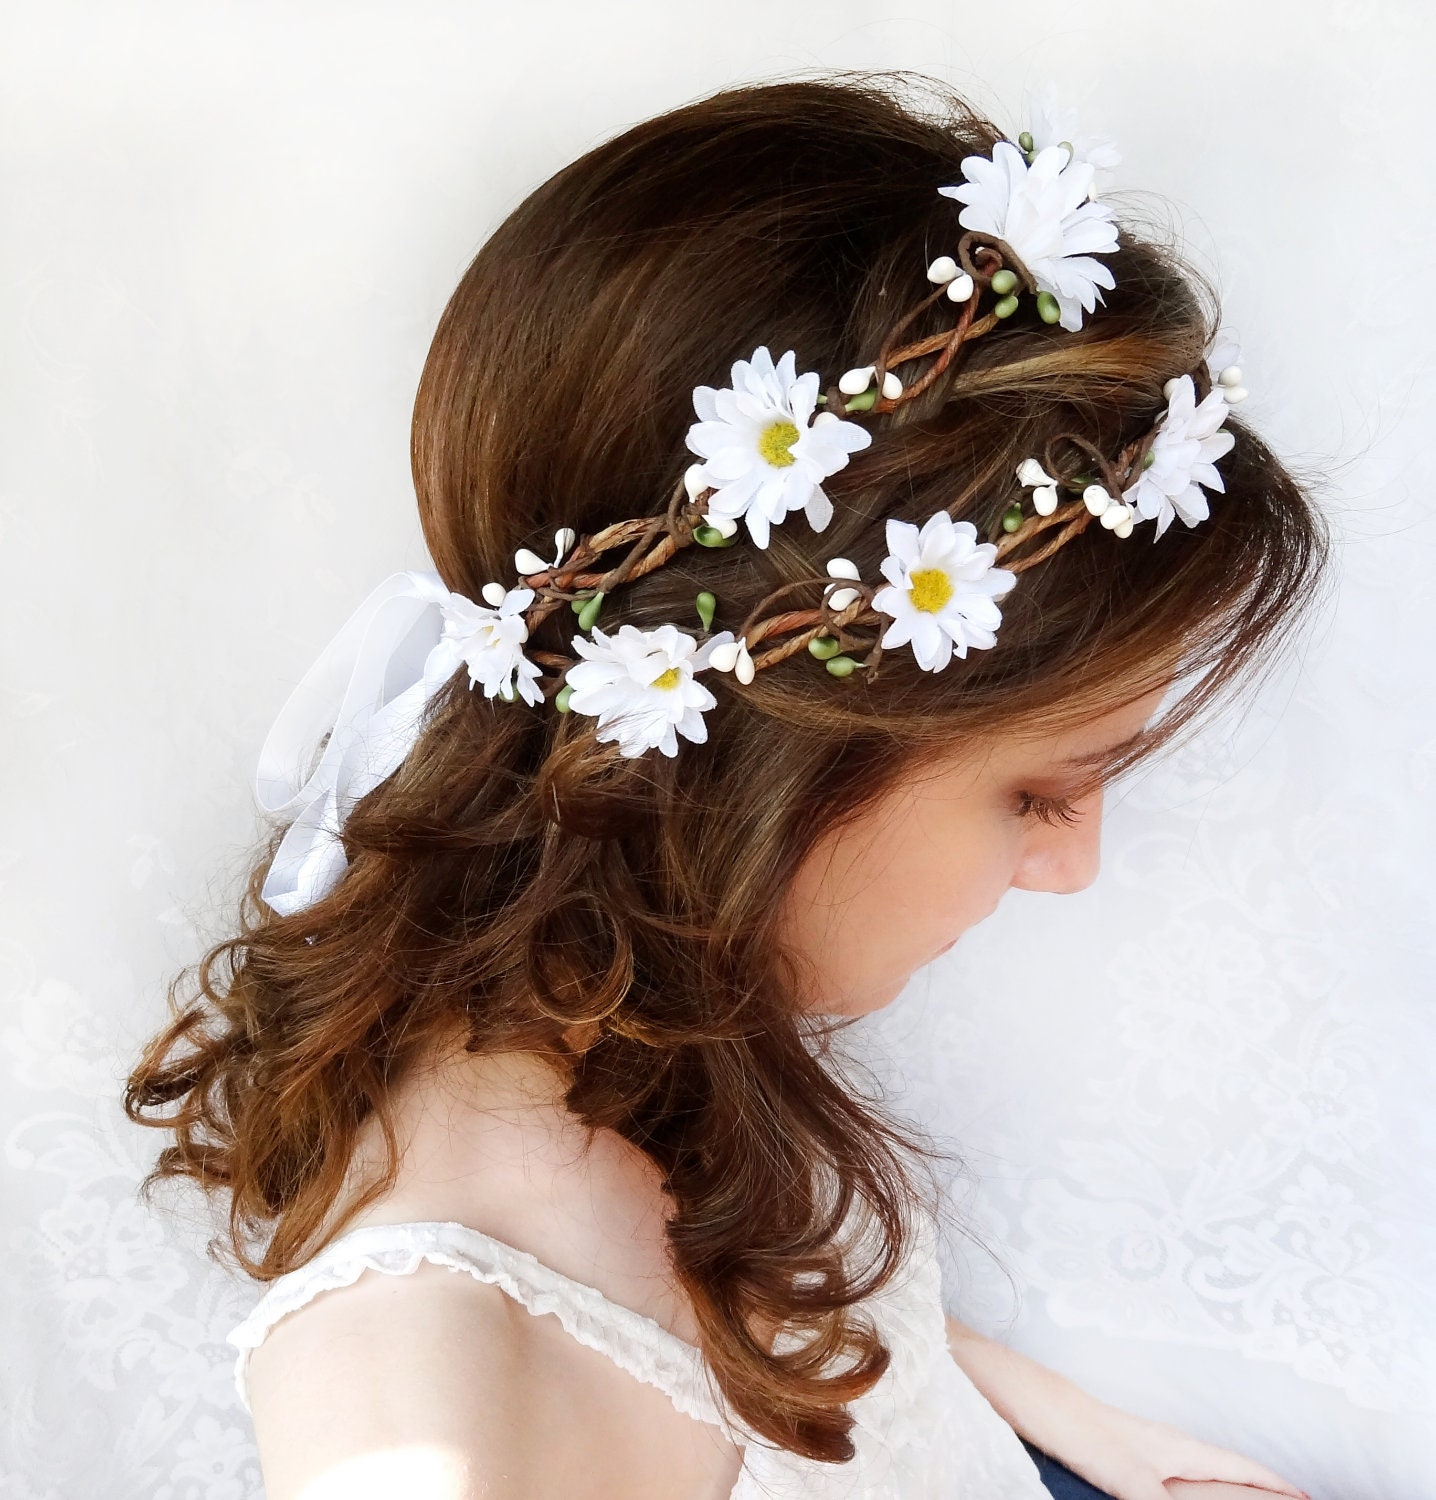 flower crown wedding daisy headband daisy flower crown